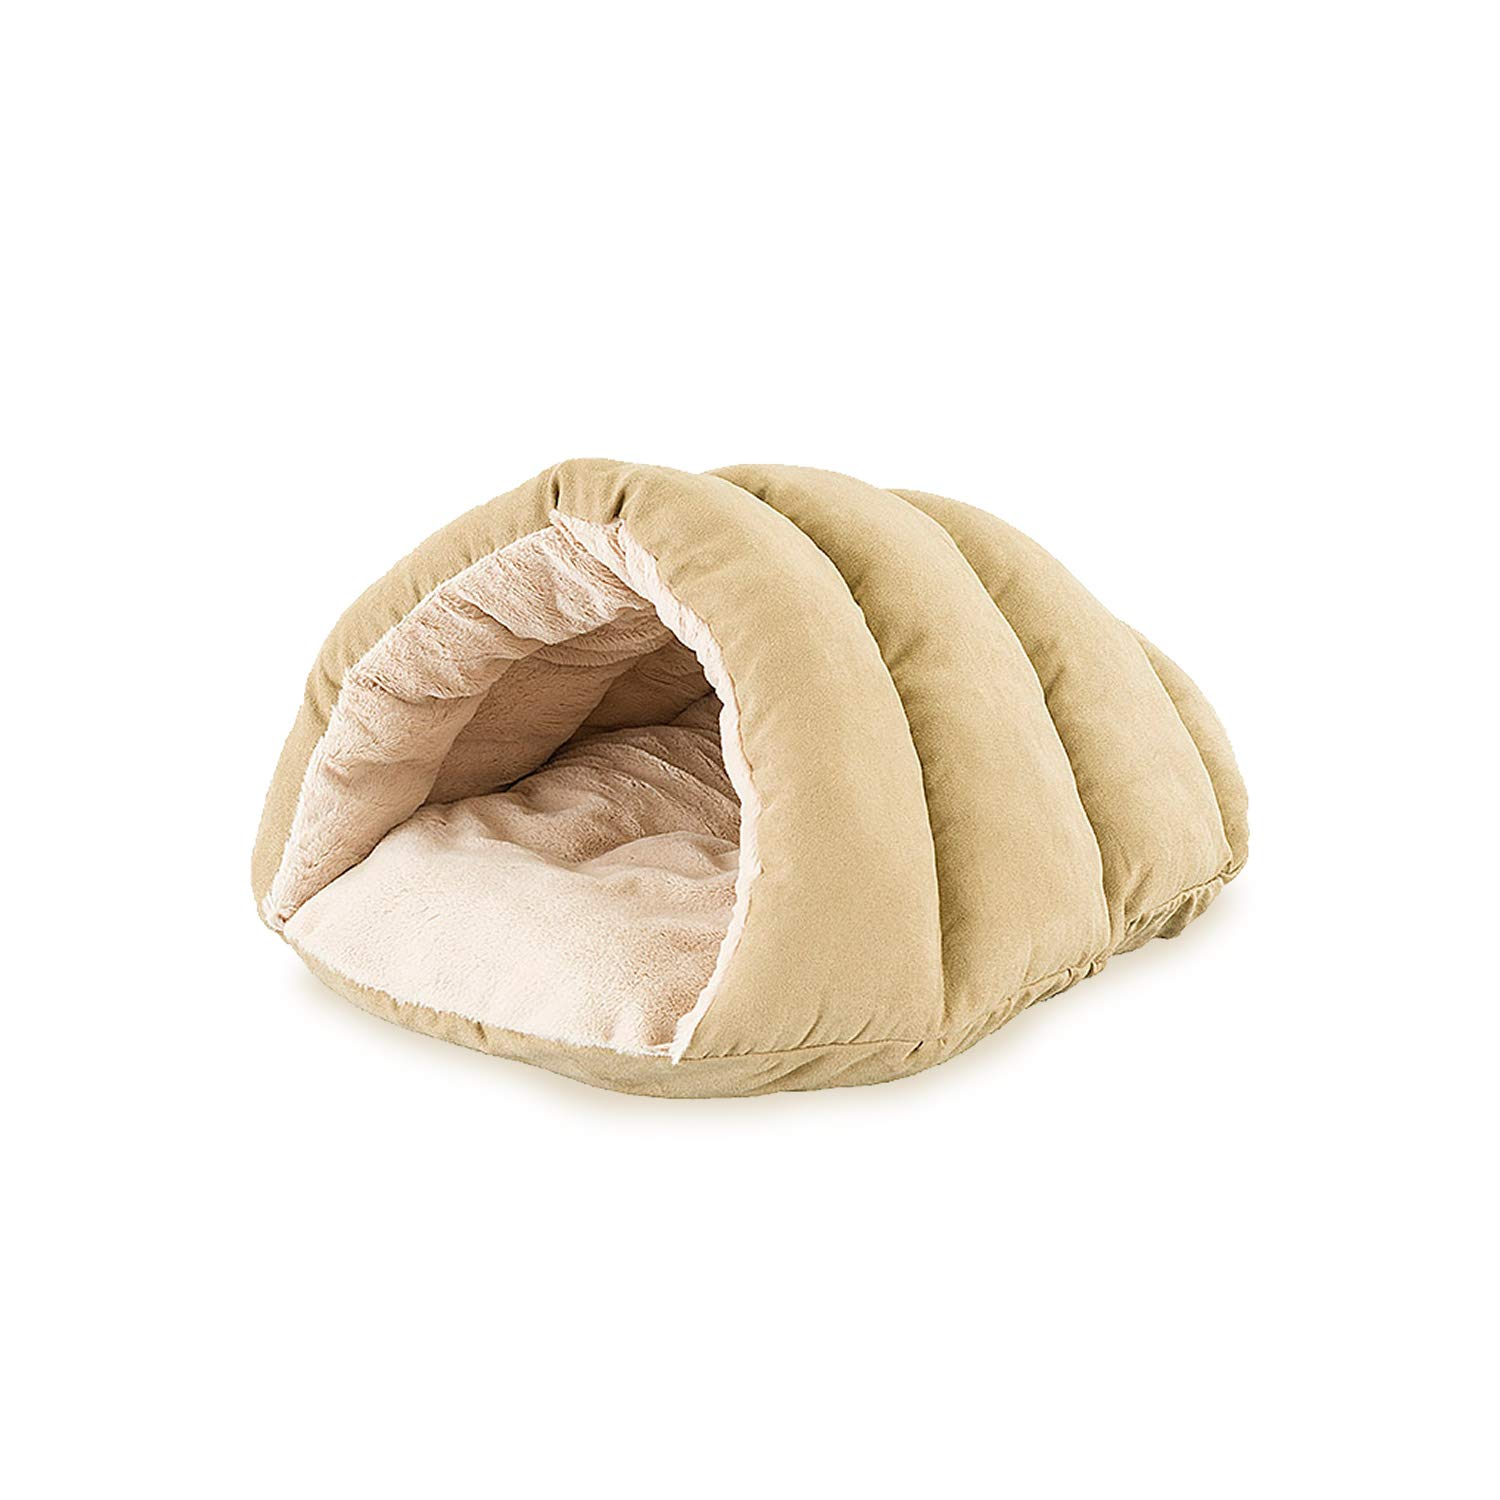 Sleep Zone Faux Suede Cuddle Cave Dog Bed - Fabric Bottom - 22X17 Inches/Tan/Attractive, Durable, Comfortable, Washable. by Ethical Pets by SPOT